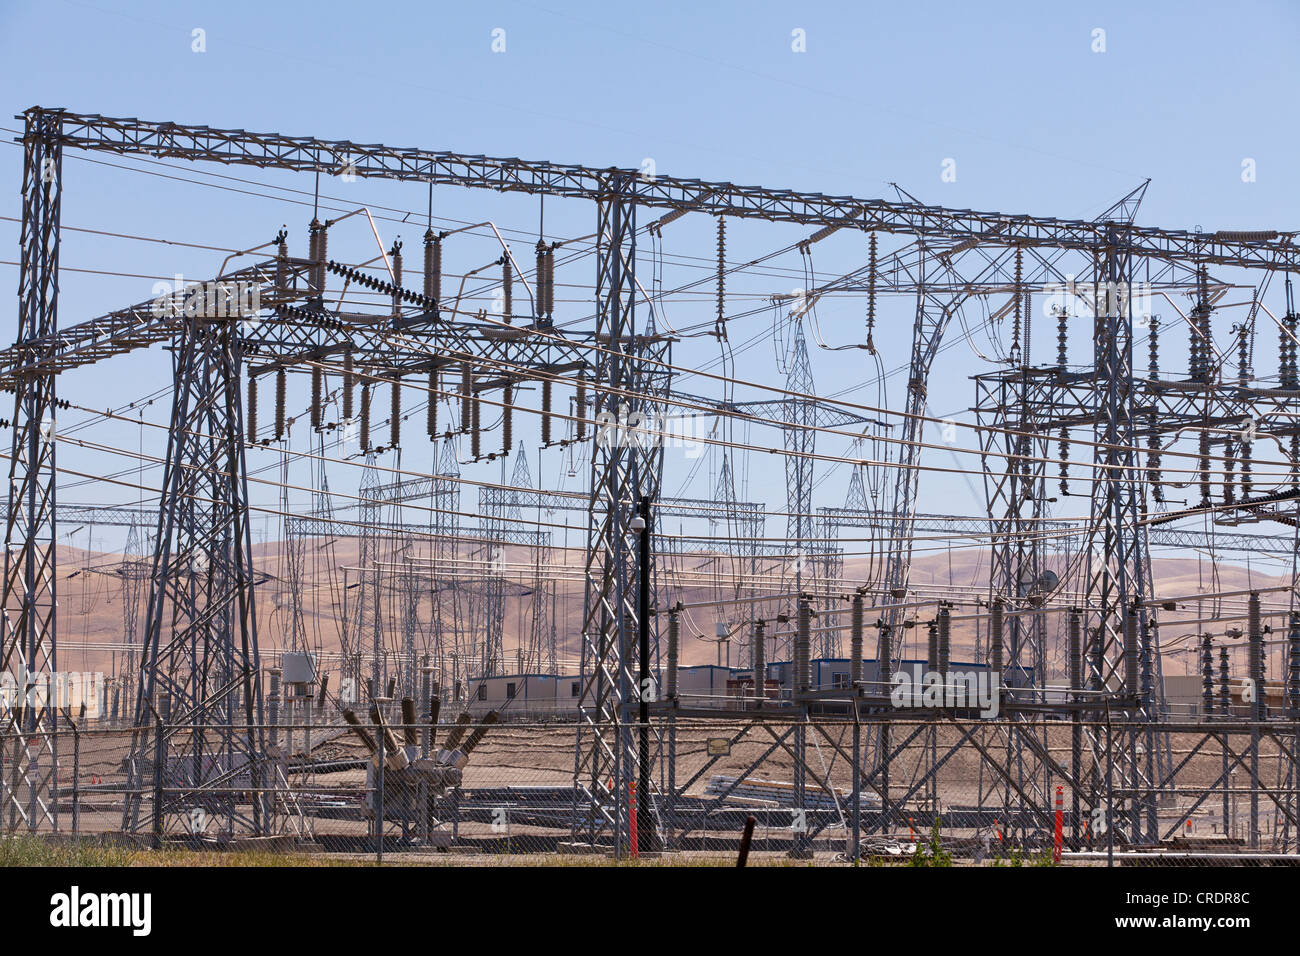 Electric substation wires and pylons - California USA - Stock Image